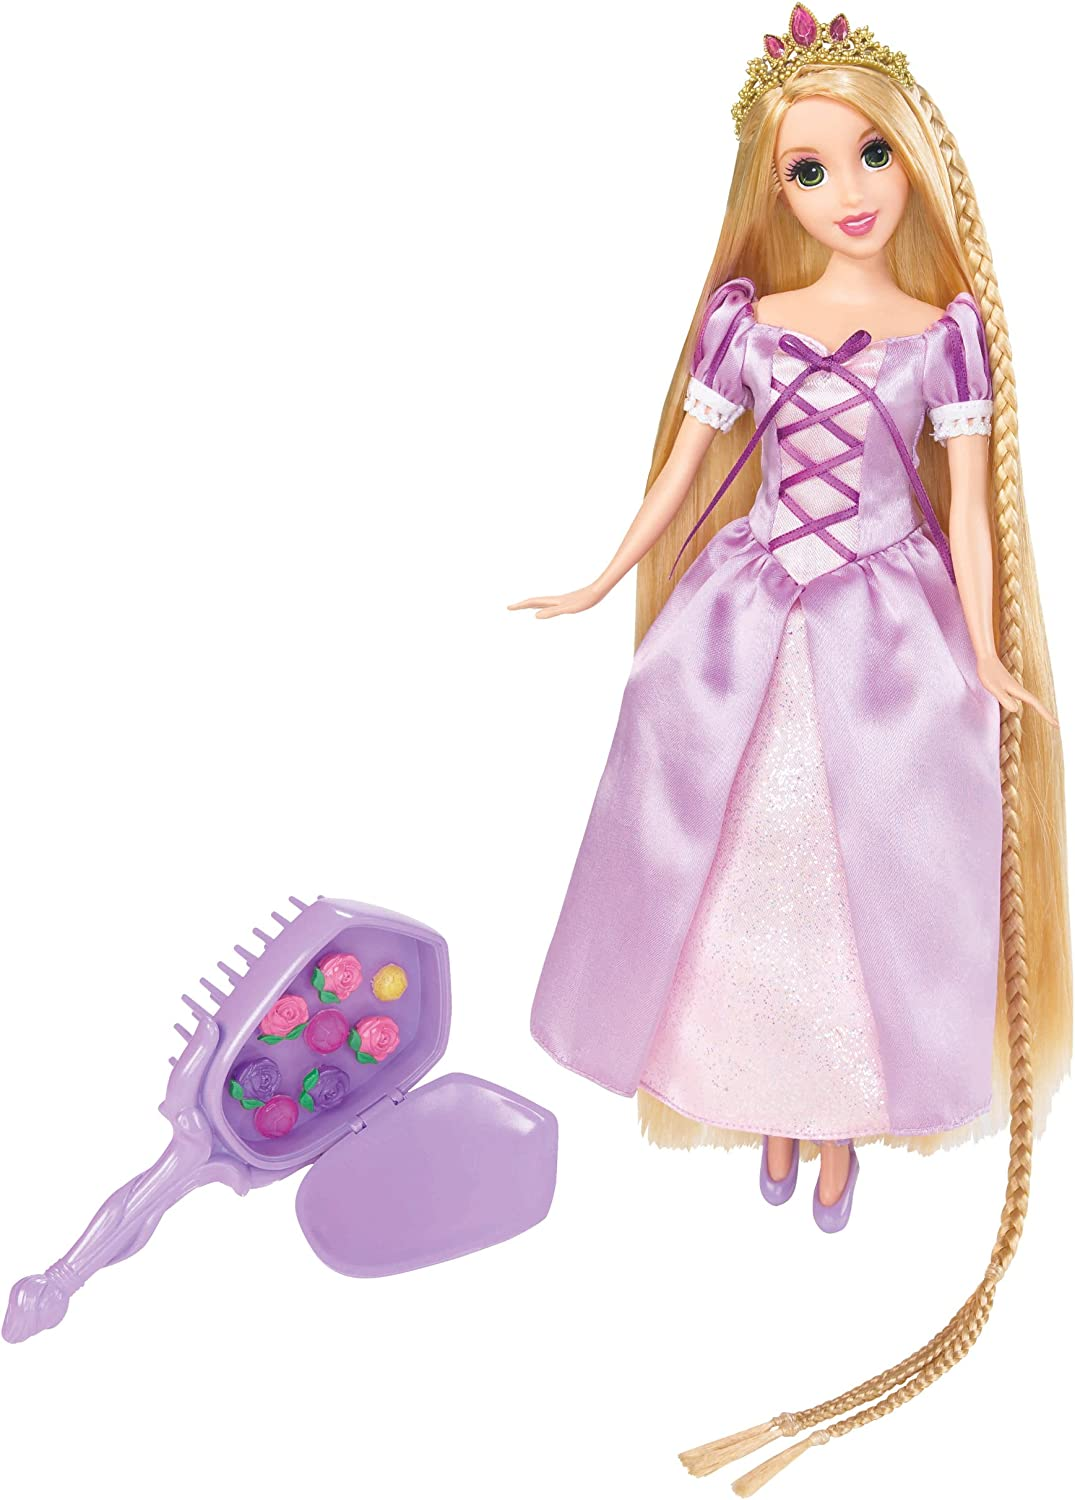 Amazon Com Disney Tangled Featuring Rapunzel Grow And Style Doll Toys Games